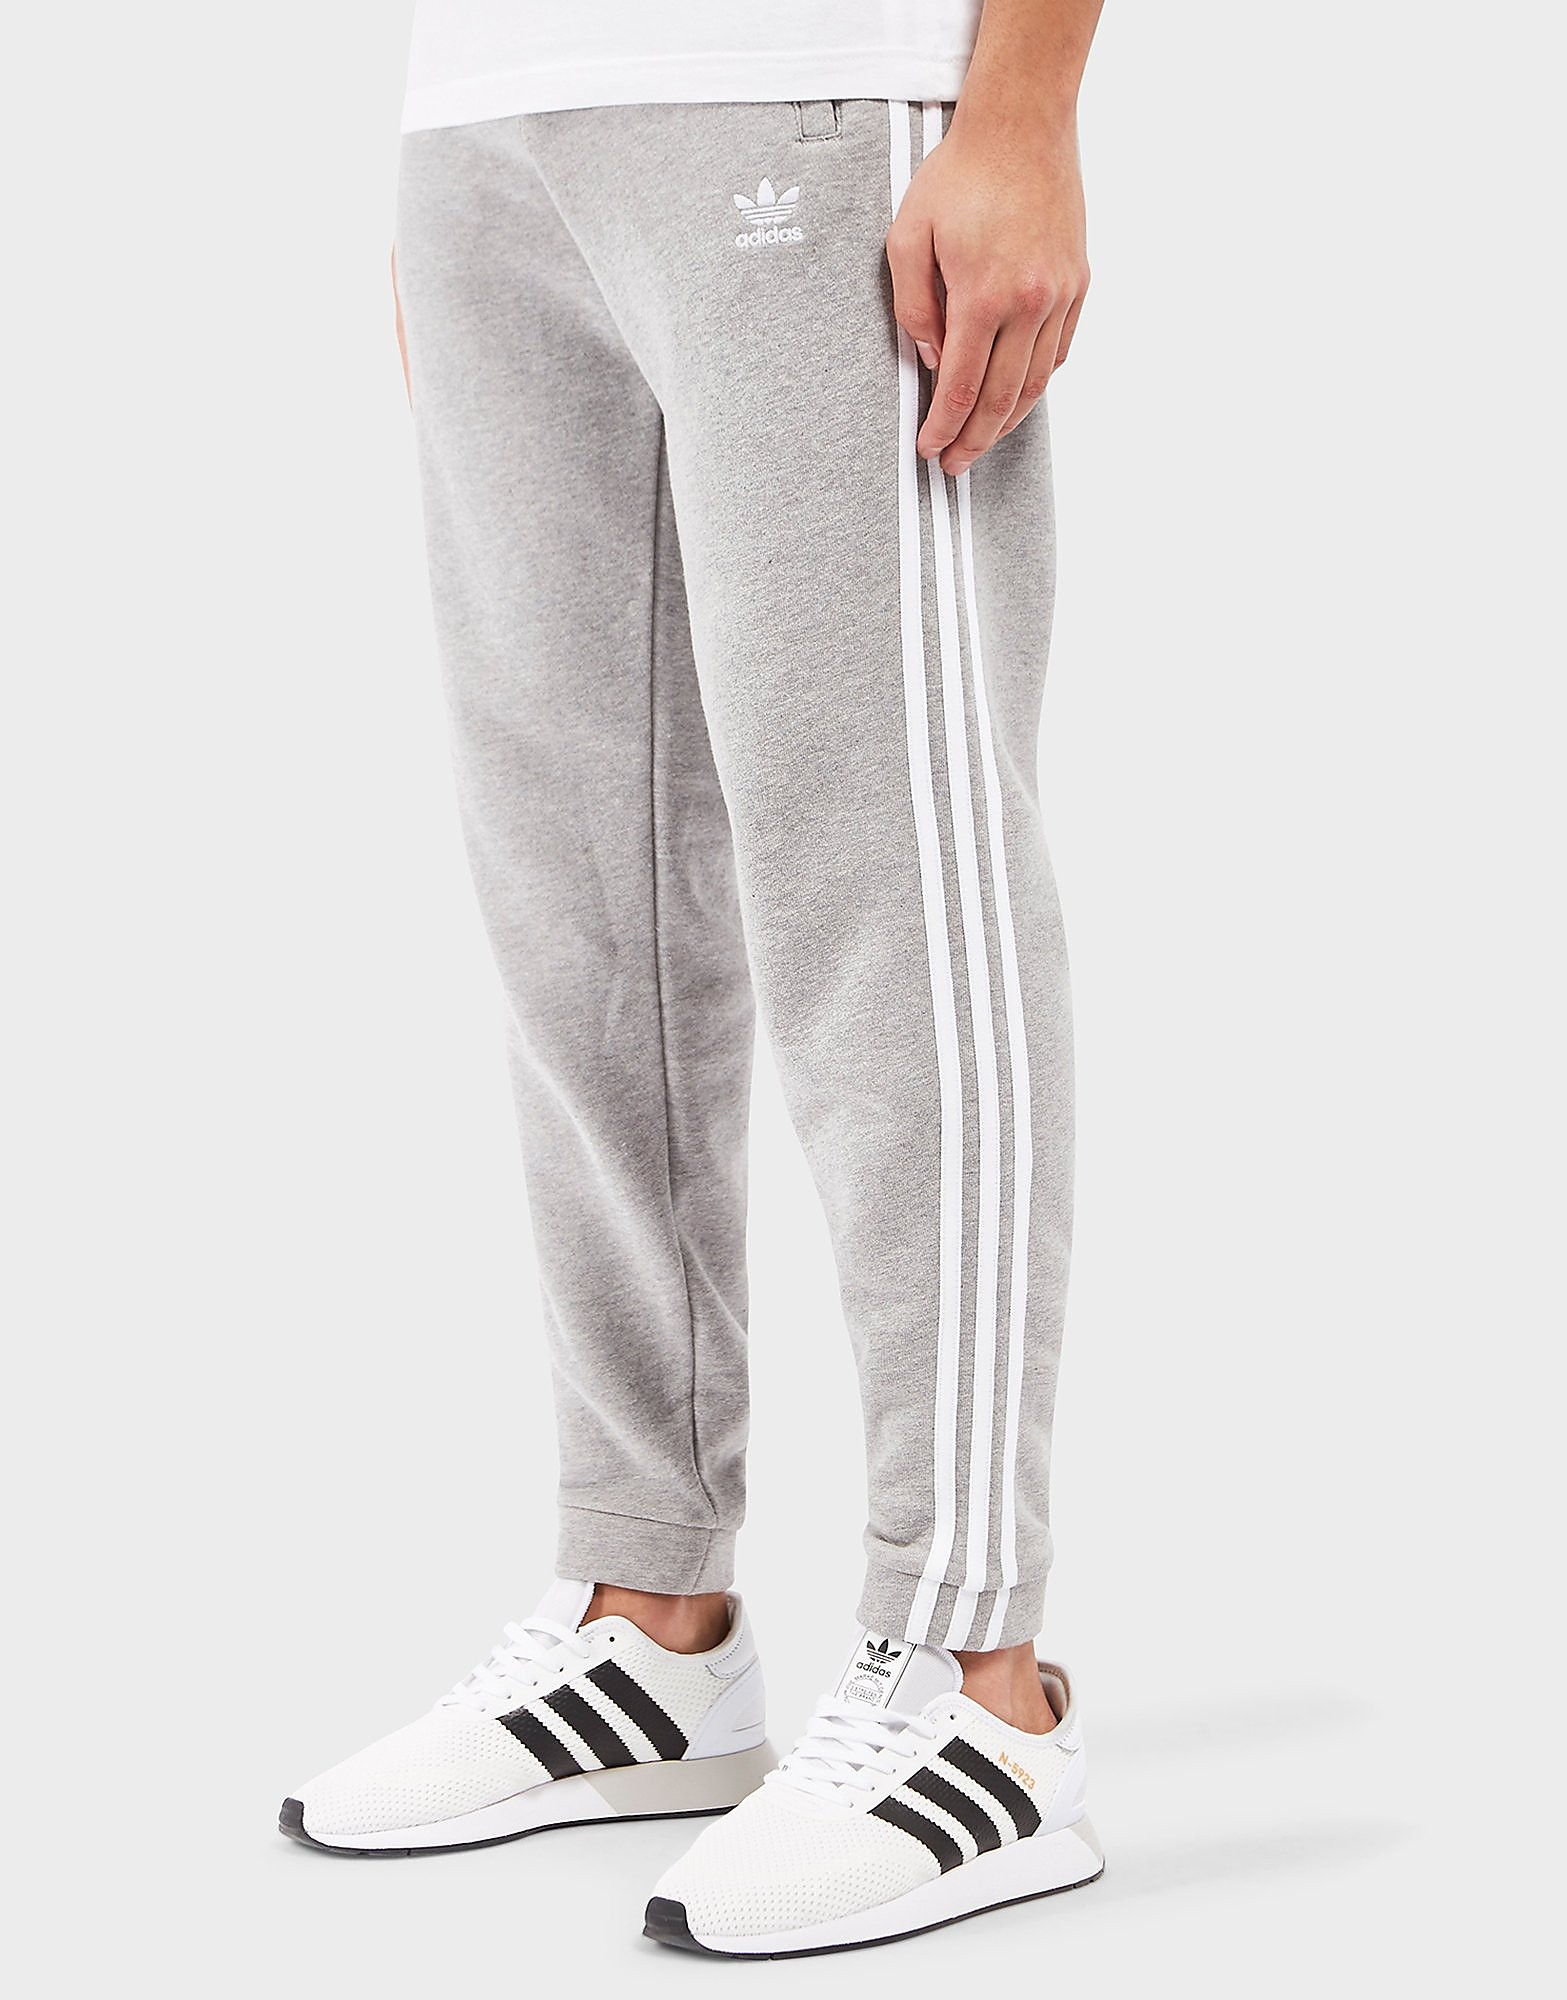 adidas Originals Trefoil Fleece Track Pants